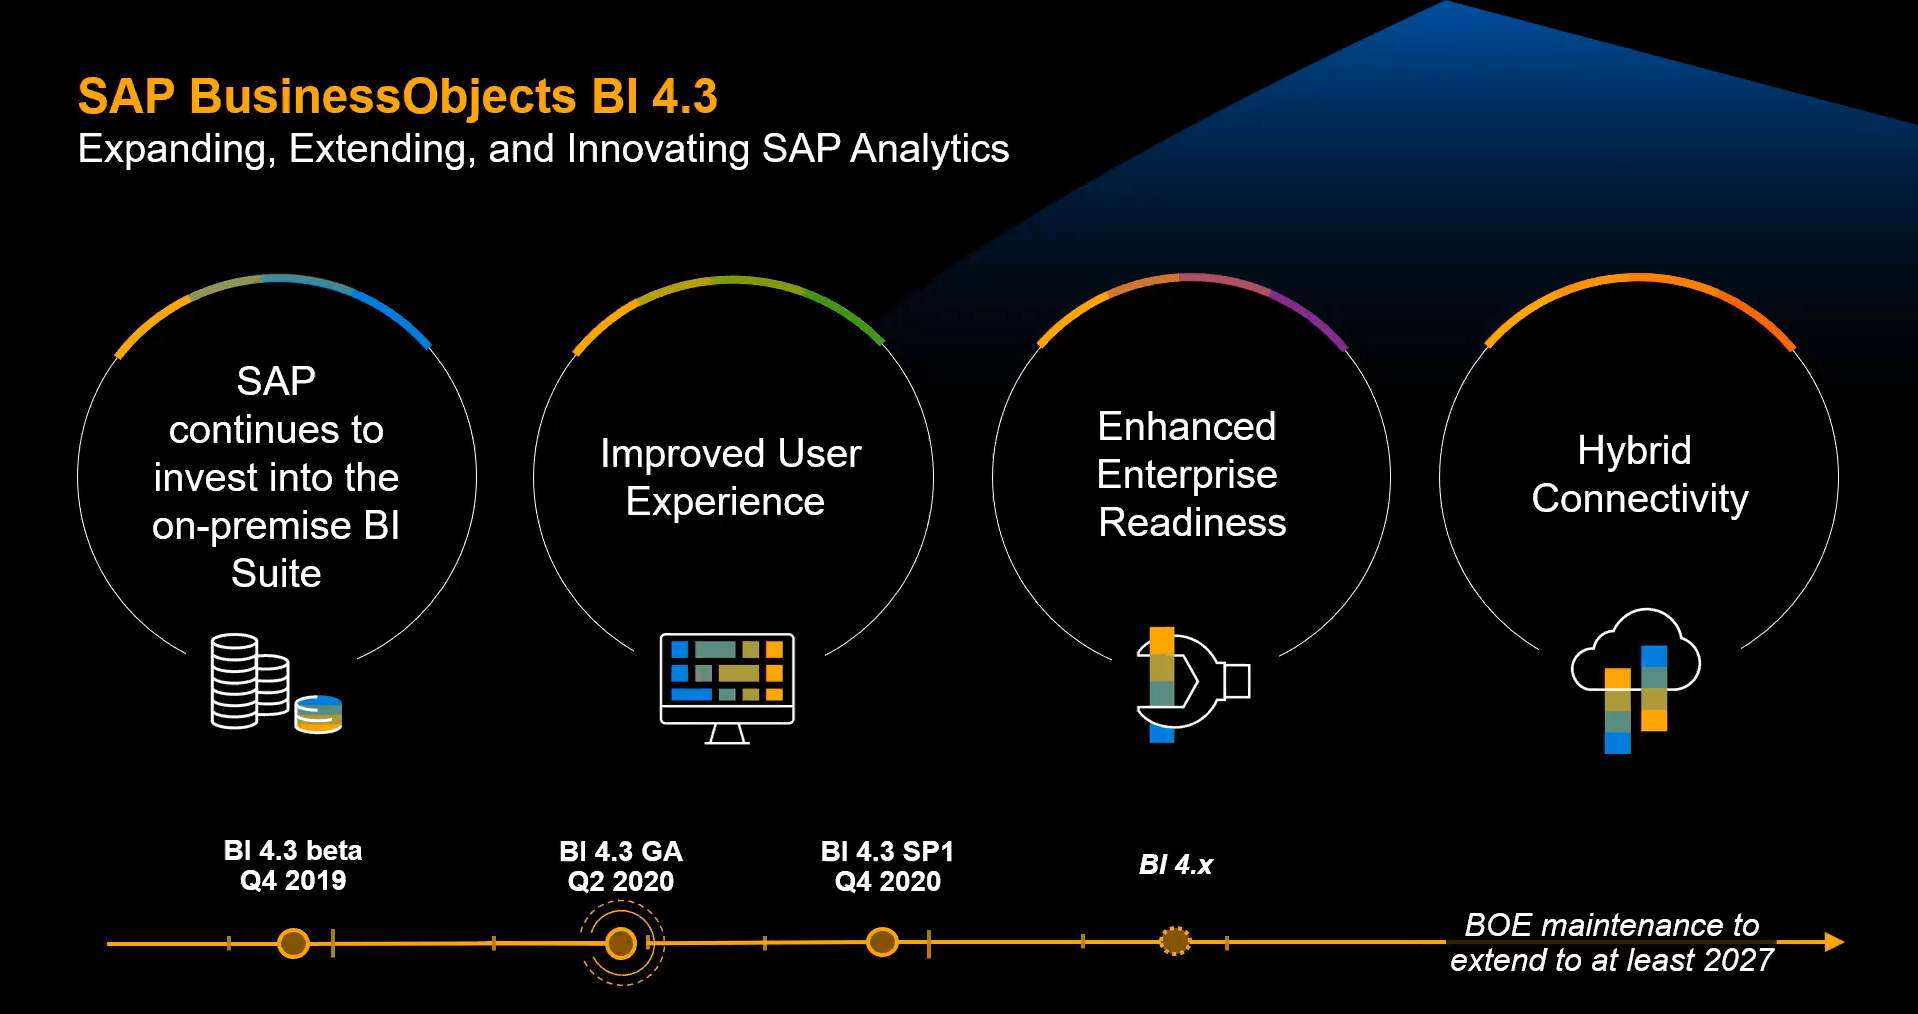 SAP%20BusinessObjects%20BI%204.x%20Key%20Themes